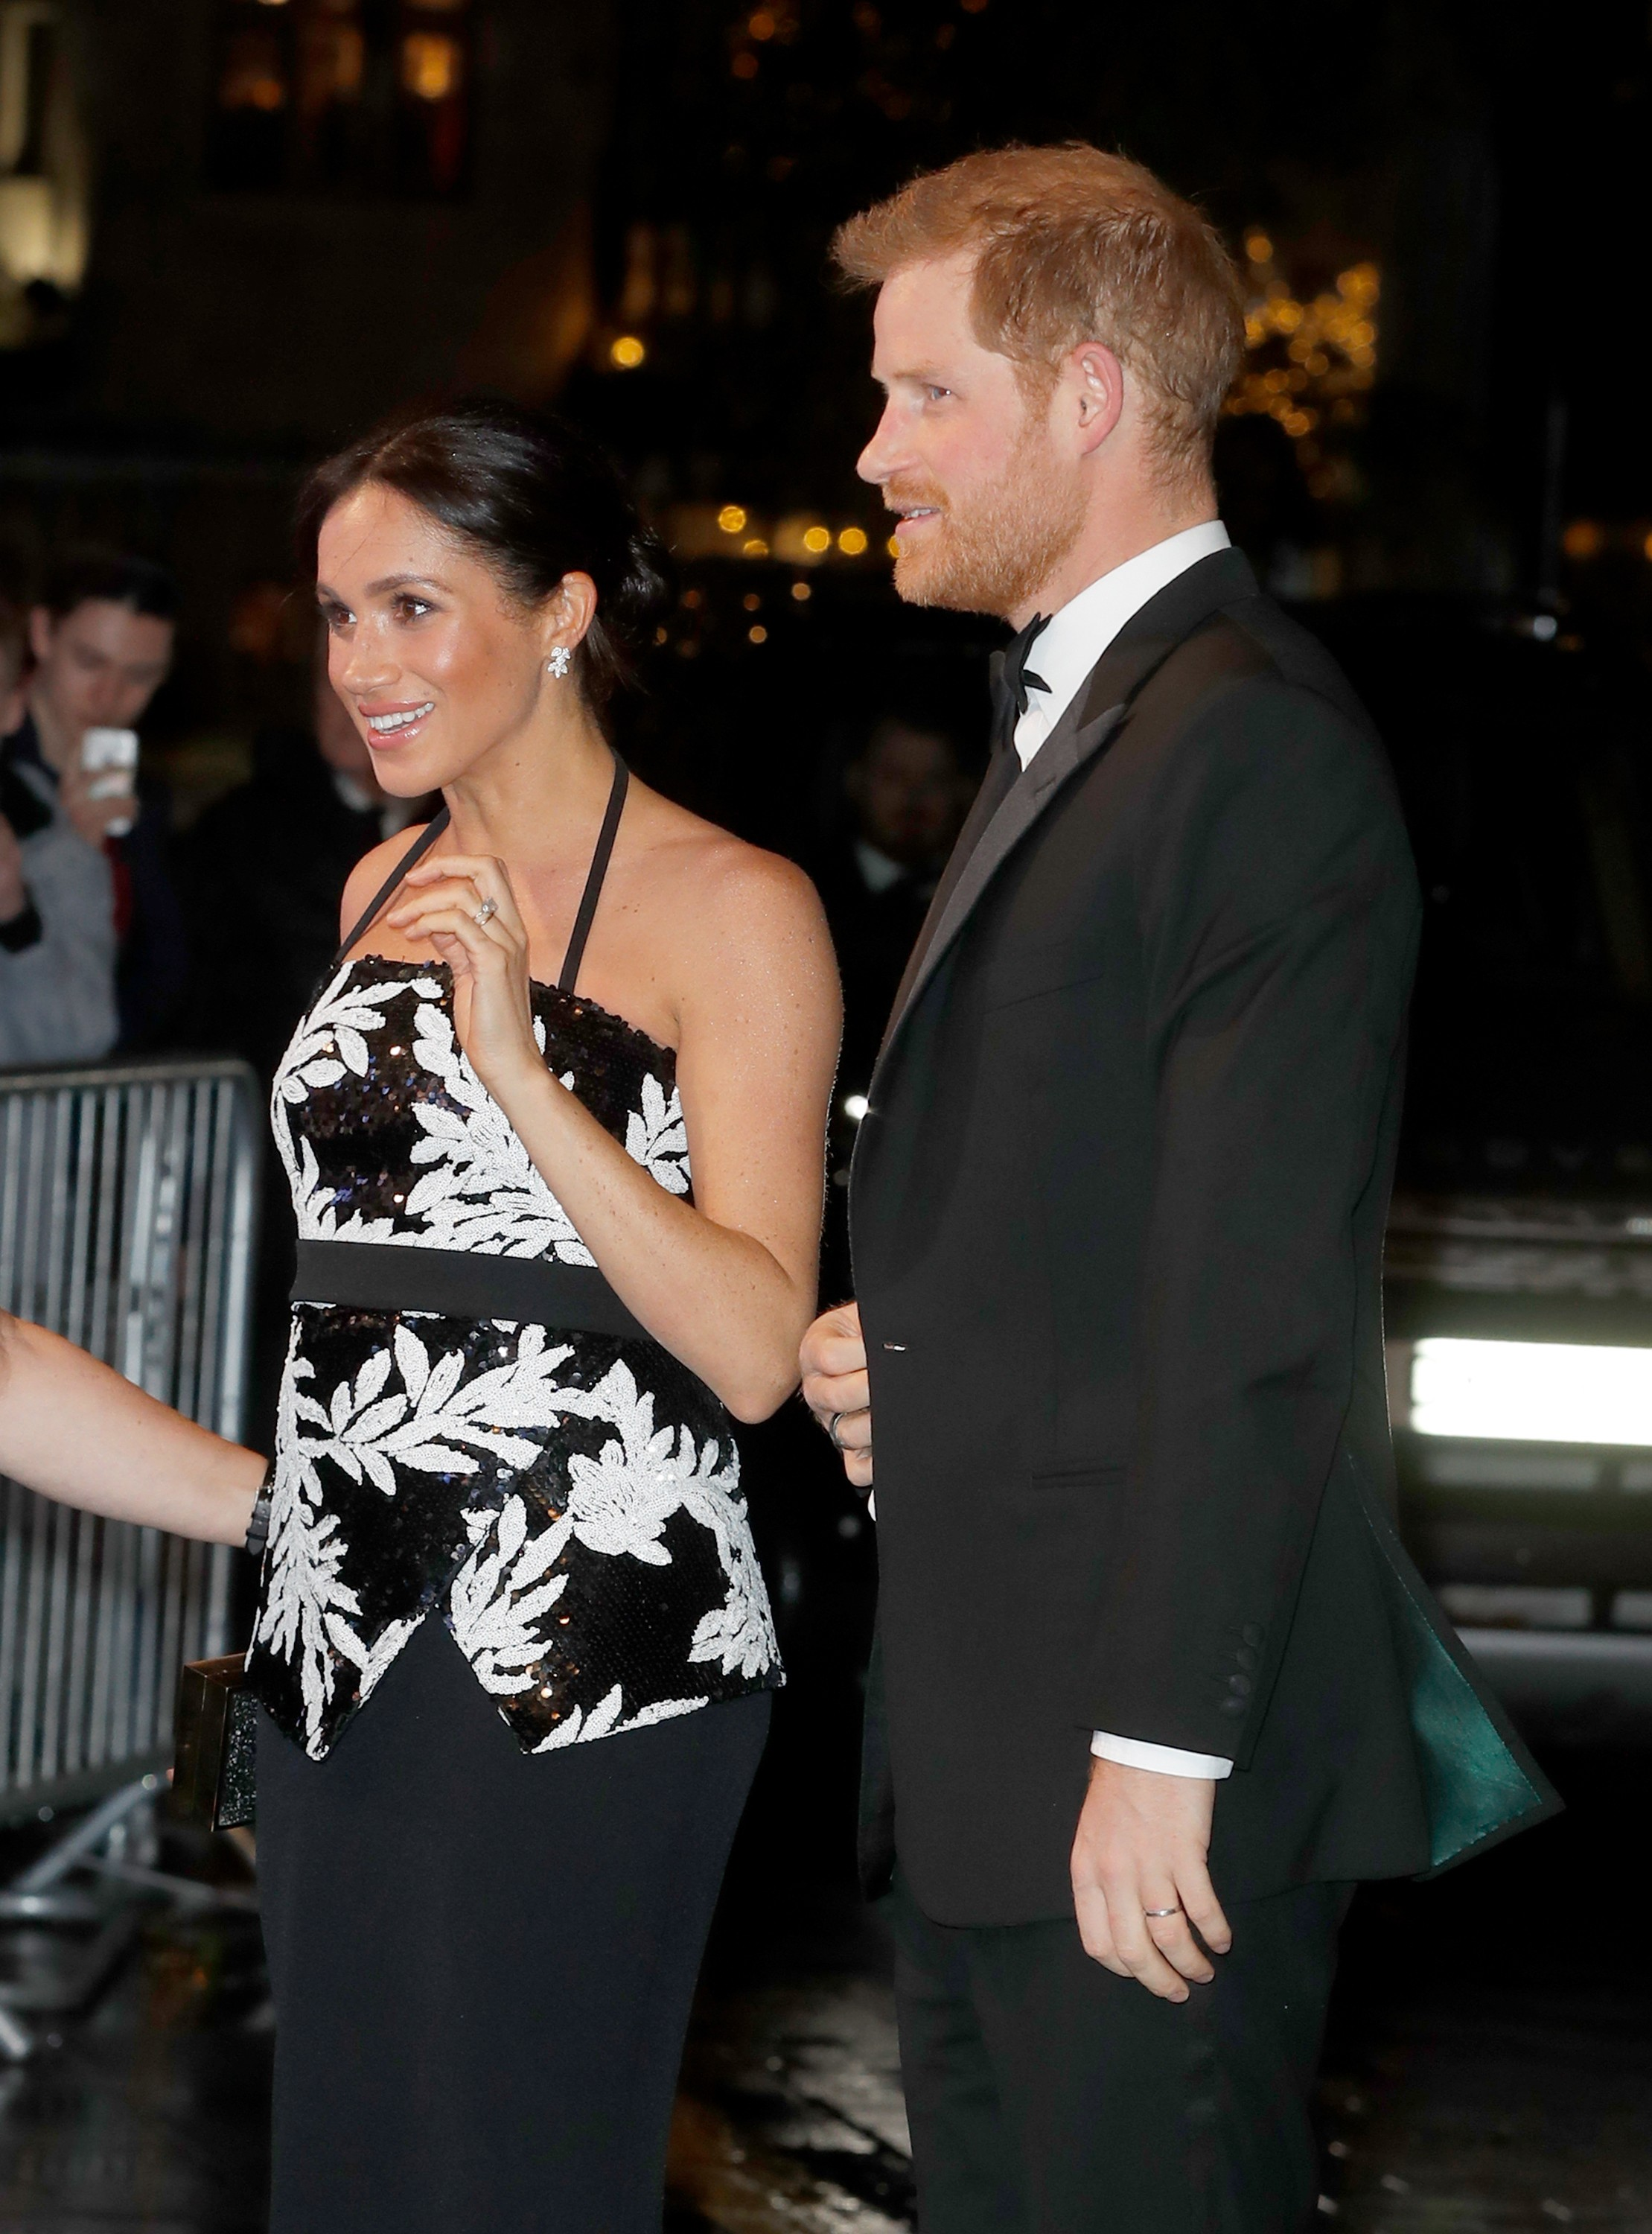 A atriz e duquesa Meghan Markle com o marido, o Príncipe Harry (Foto: Getty Images)